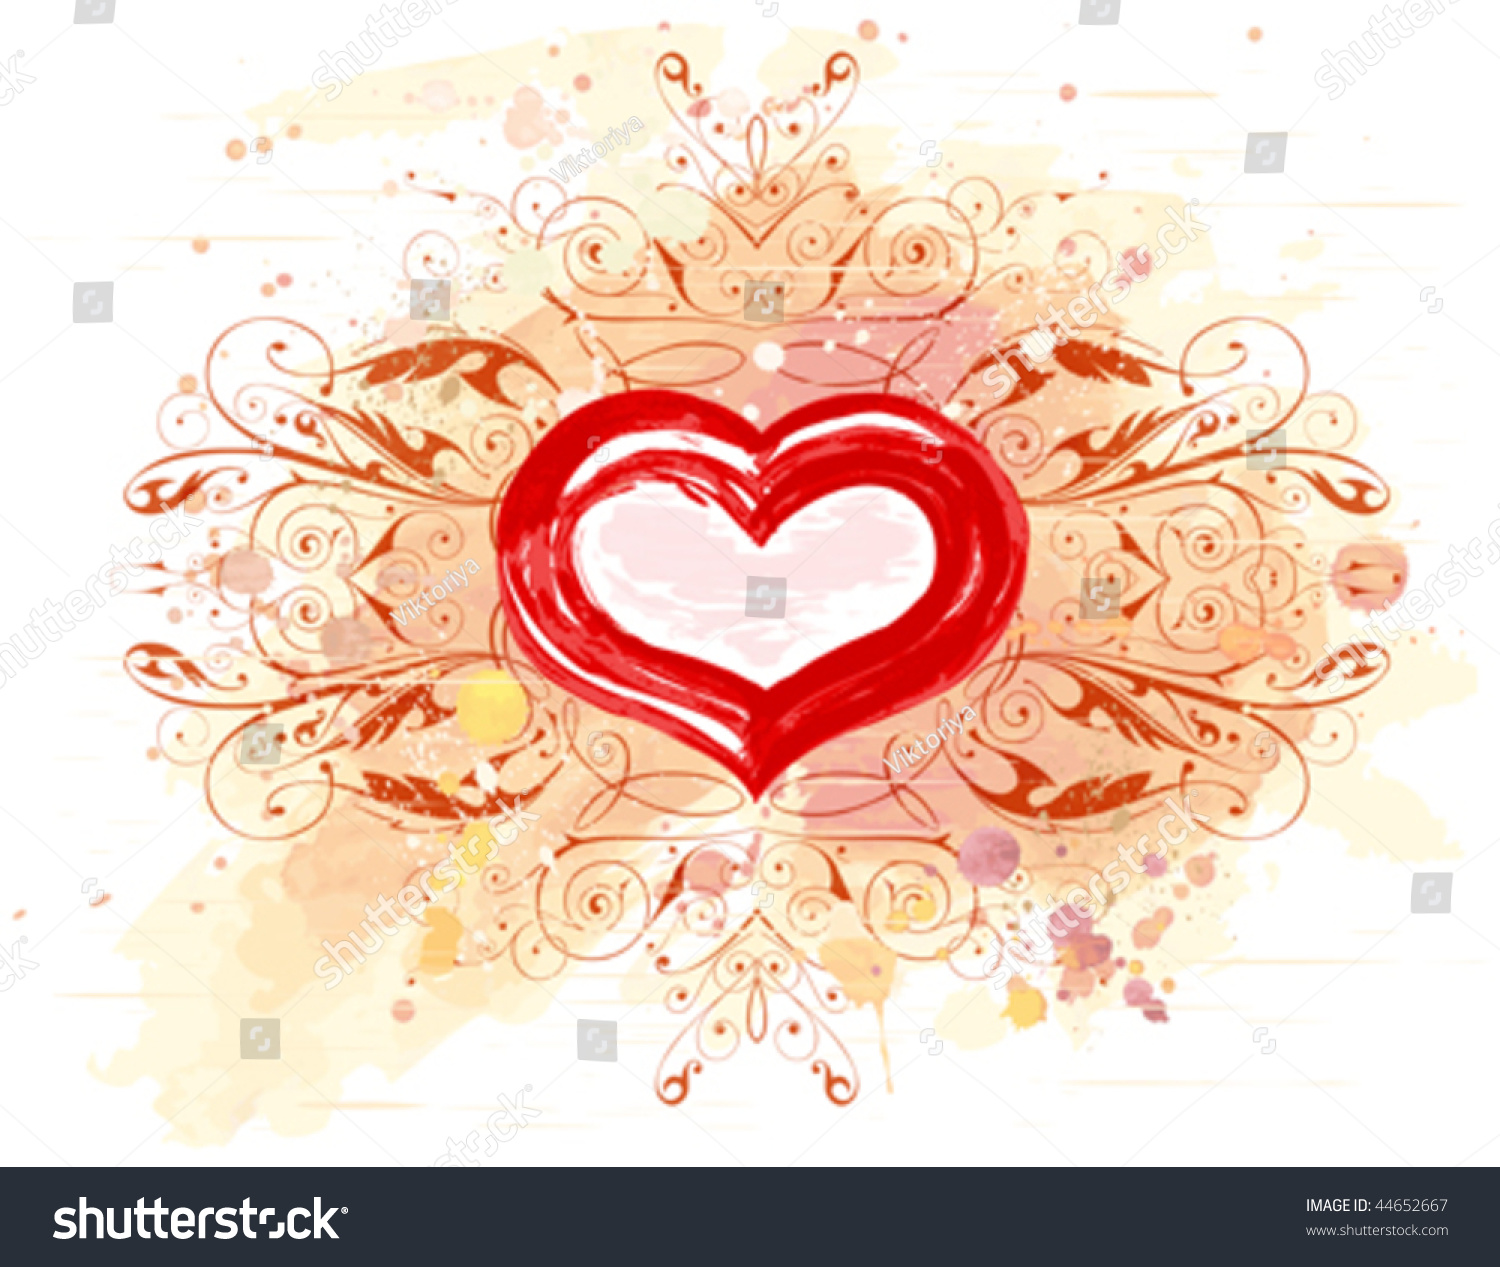 Vector heart calligraphy flowers ornament on watercolor